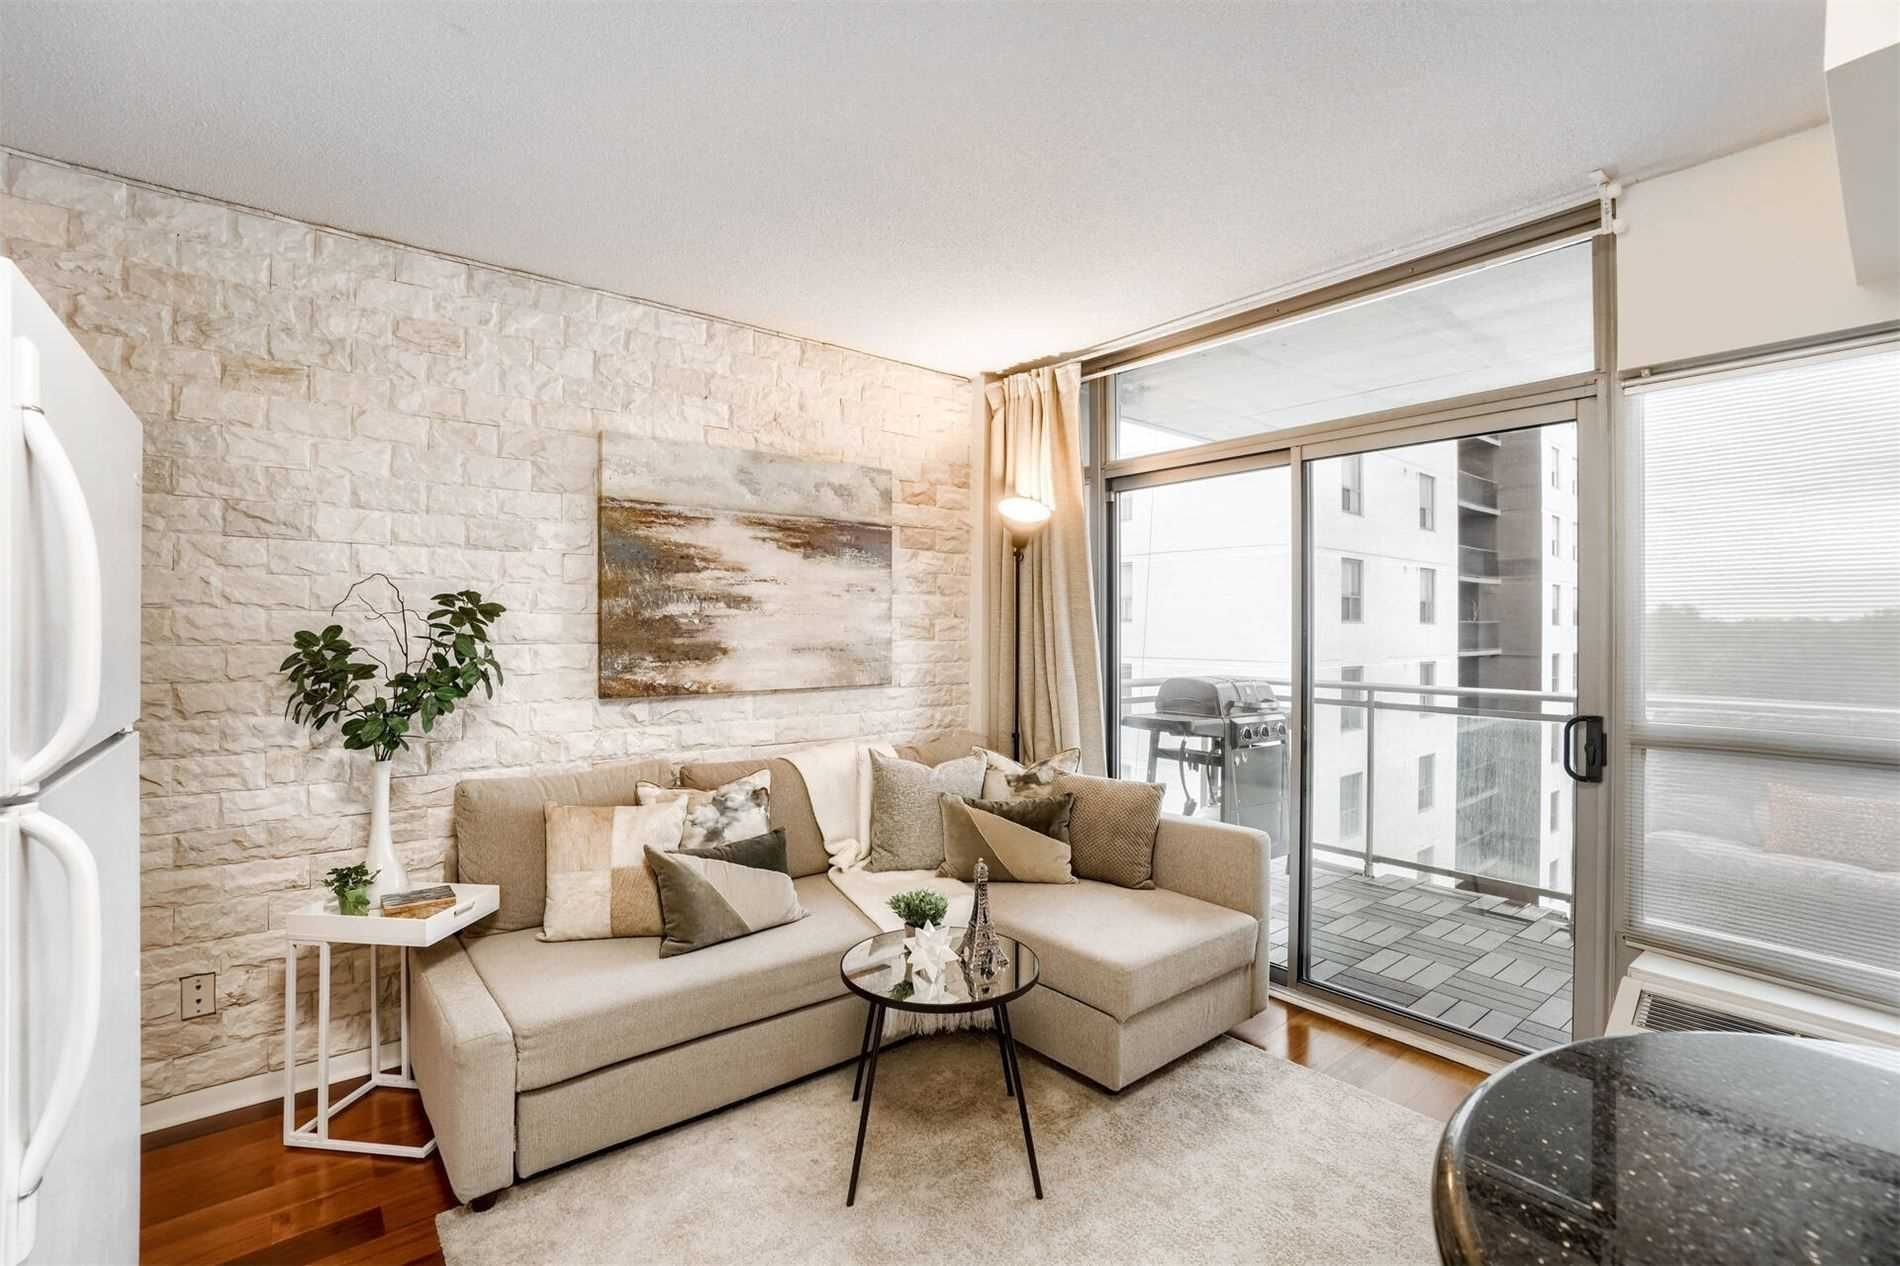 2464 Weston Rd, unit 705 for sale in Toronto - image #2